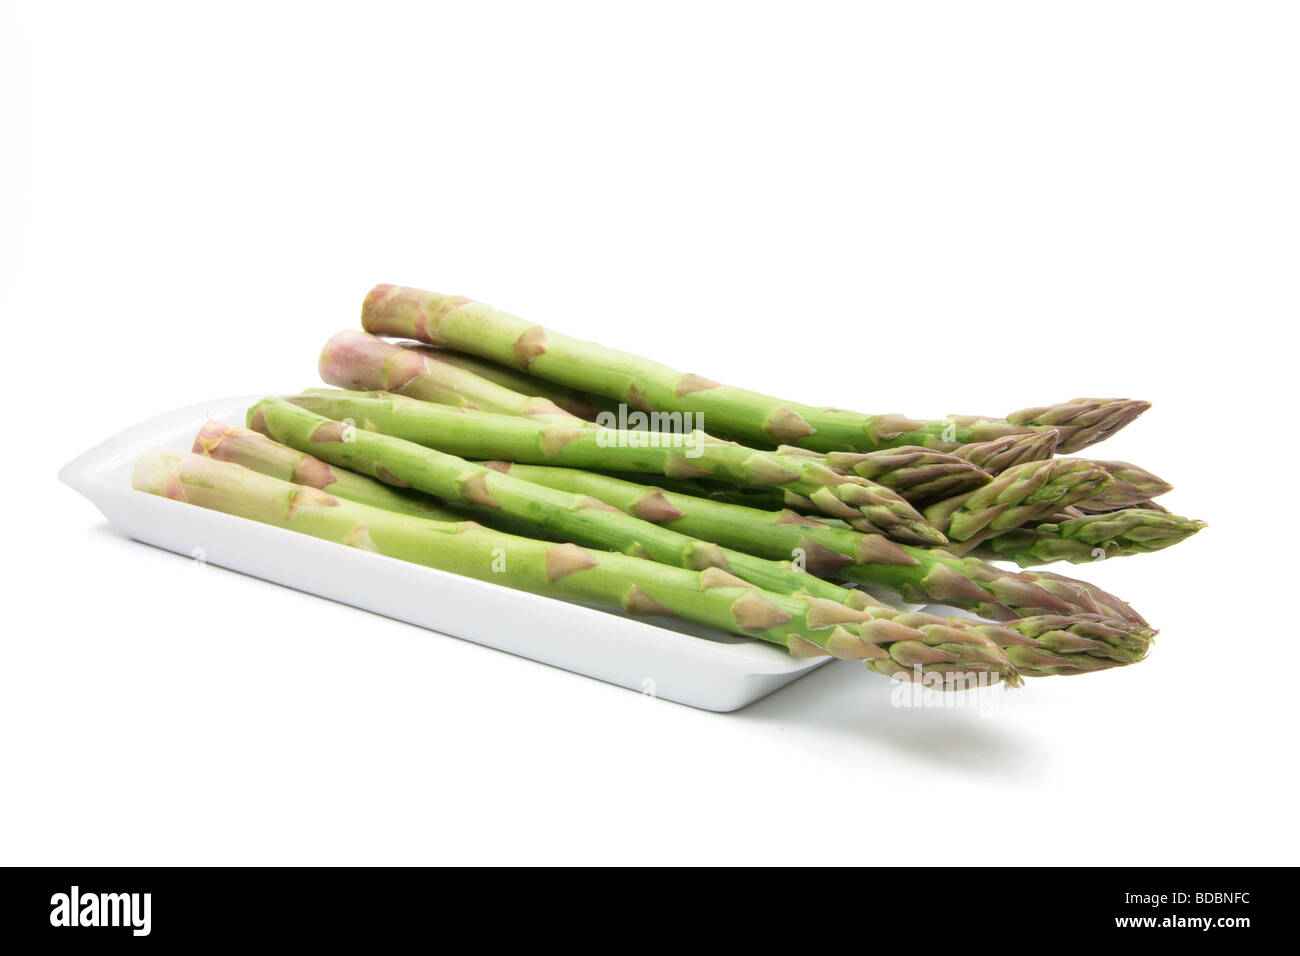 Plate of Asparagus - Stock Image